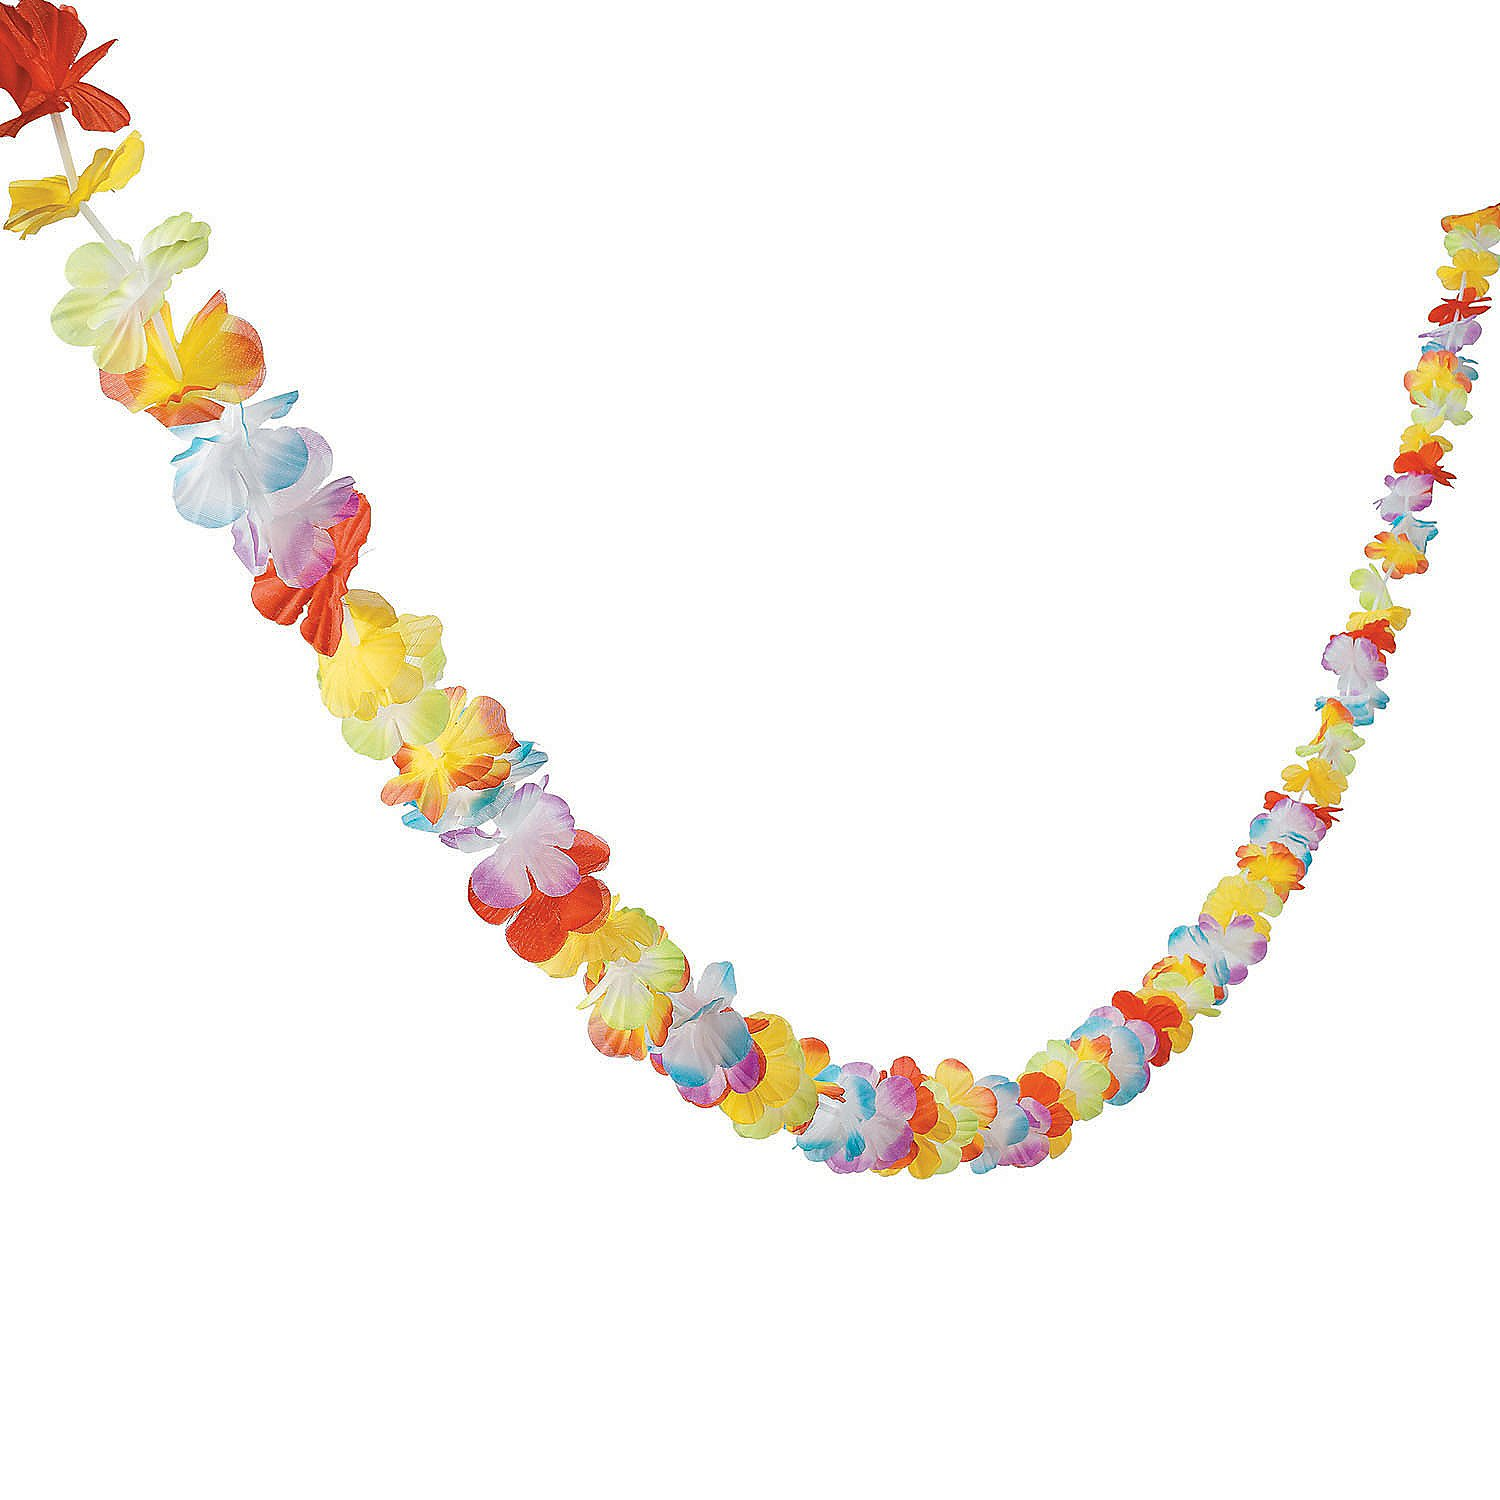 Bright Jumbo Flower Lei Garland (1 pc) by Fun Express by Fun Express